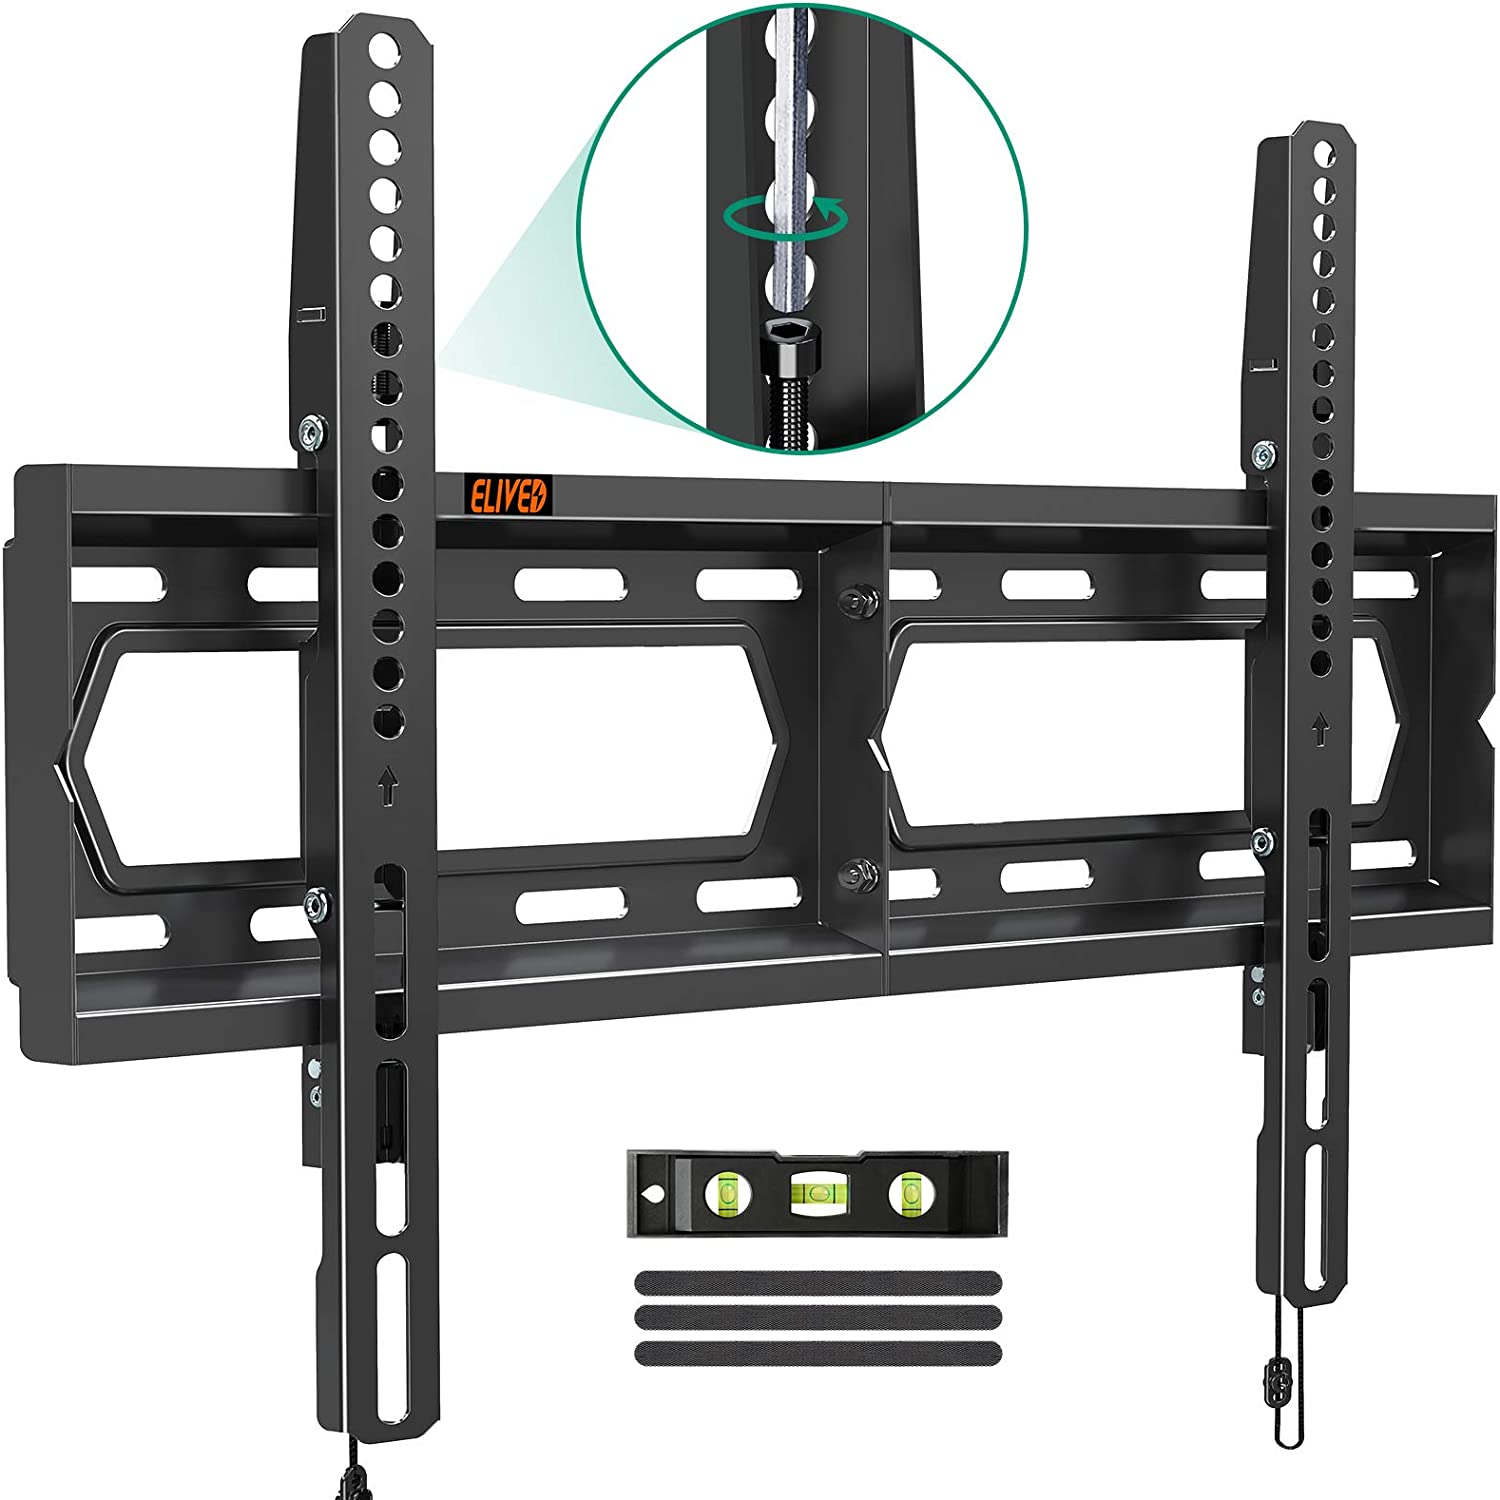 Fixed TV Free Shipping New Wall Mount Max 81% OFF Bracket Low for Profile Universal